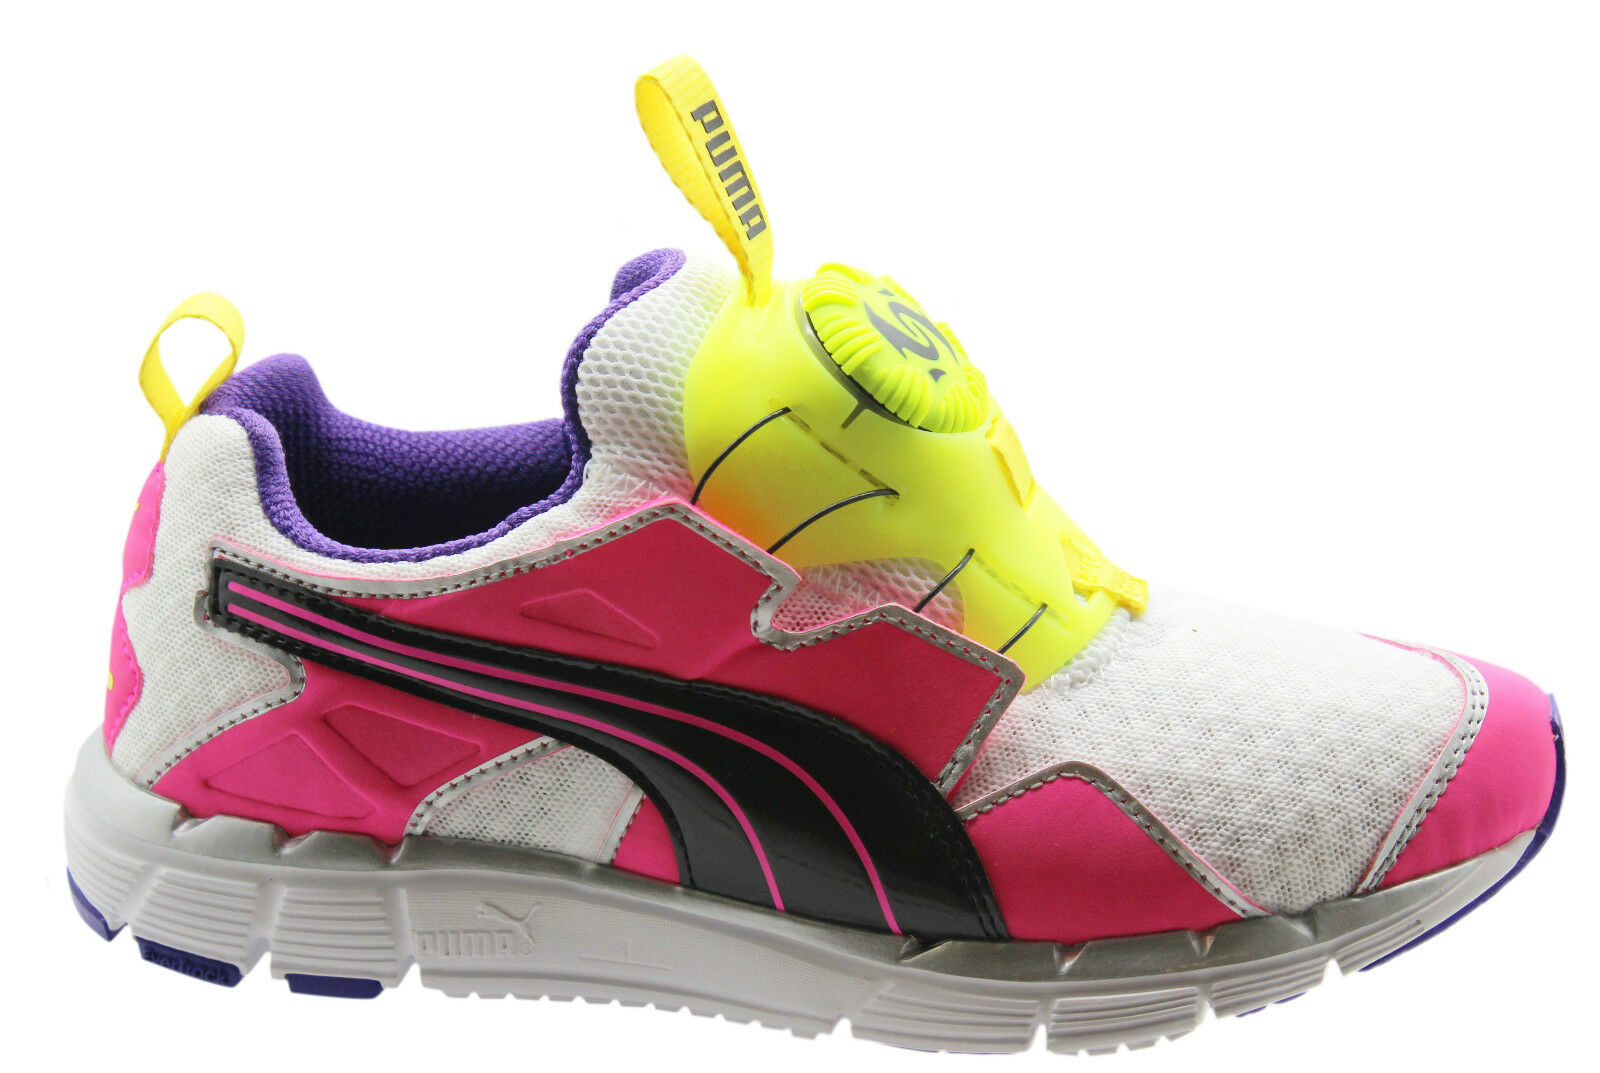 Puma Future Disc LTWT Unisex Trainers 10 Running Shoes Lightweight 357371 10 Trainers D42 7a6983